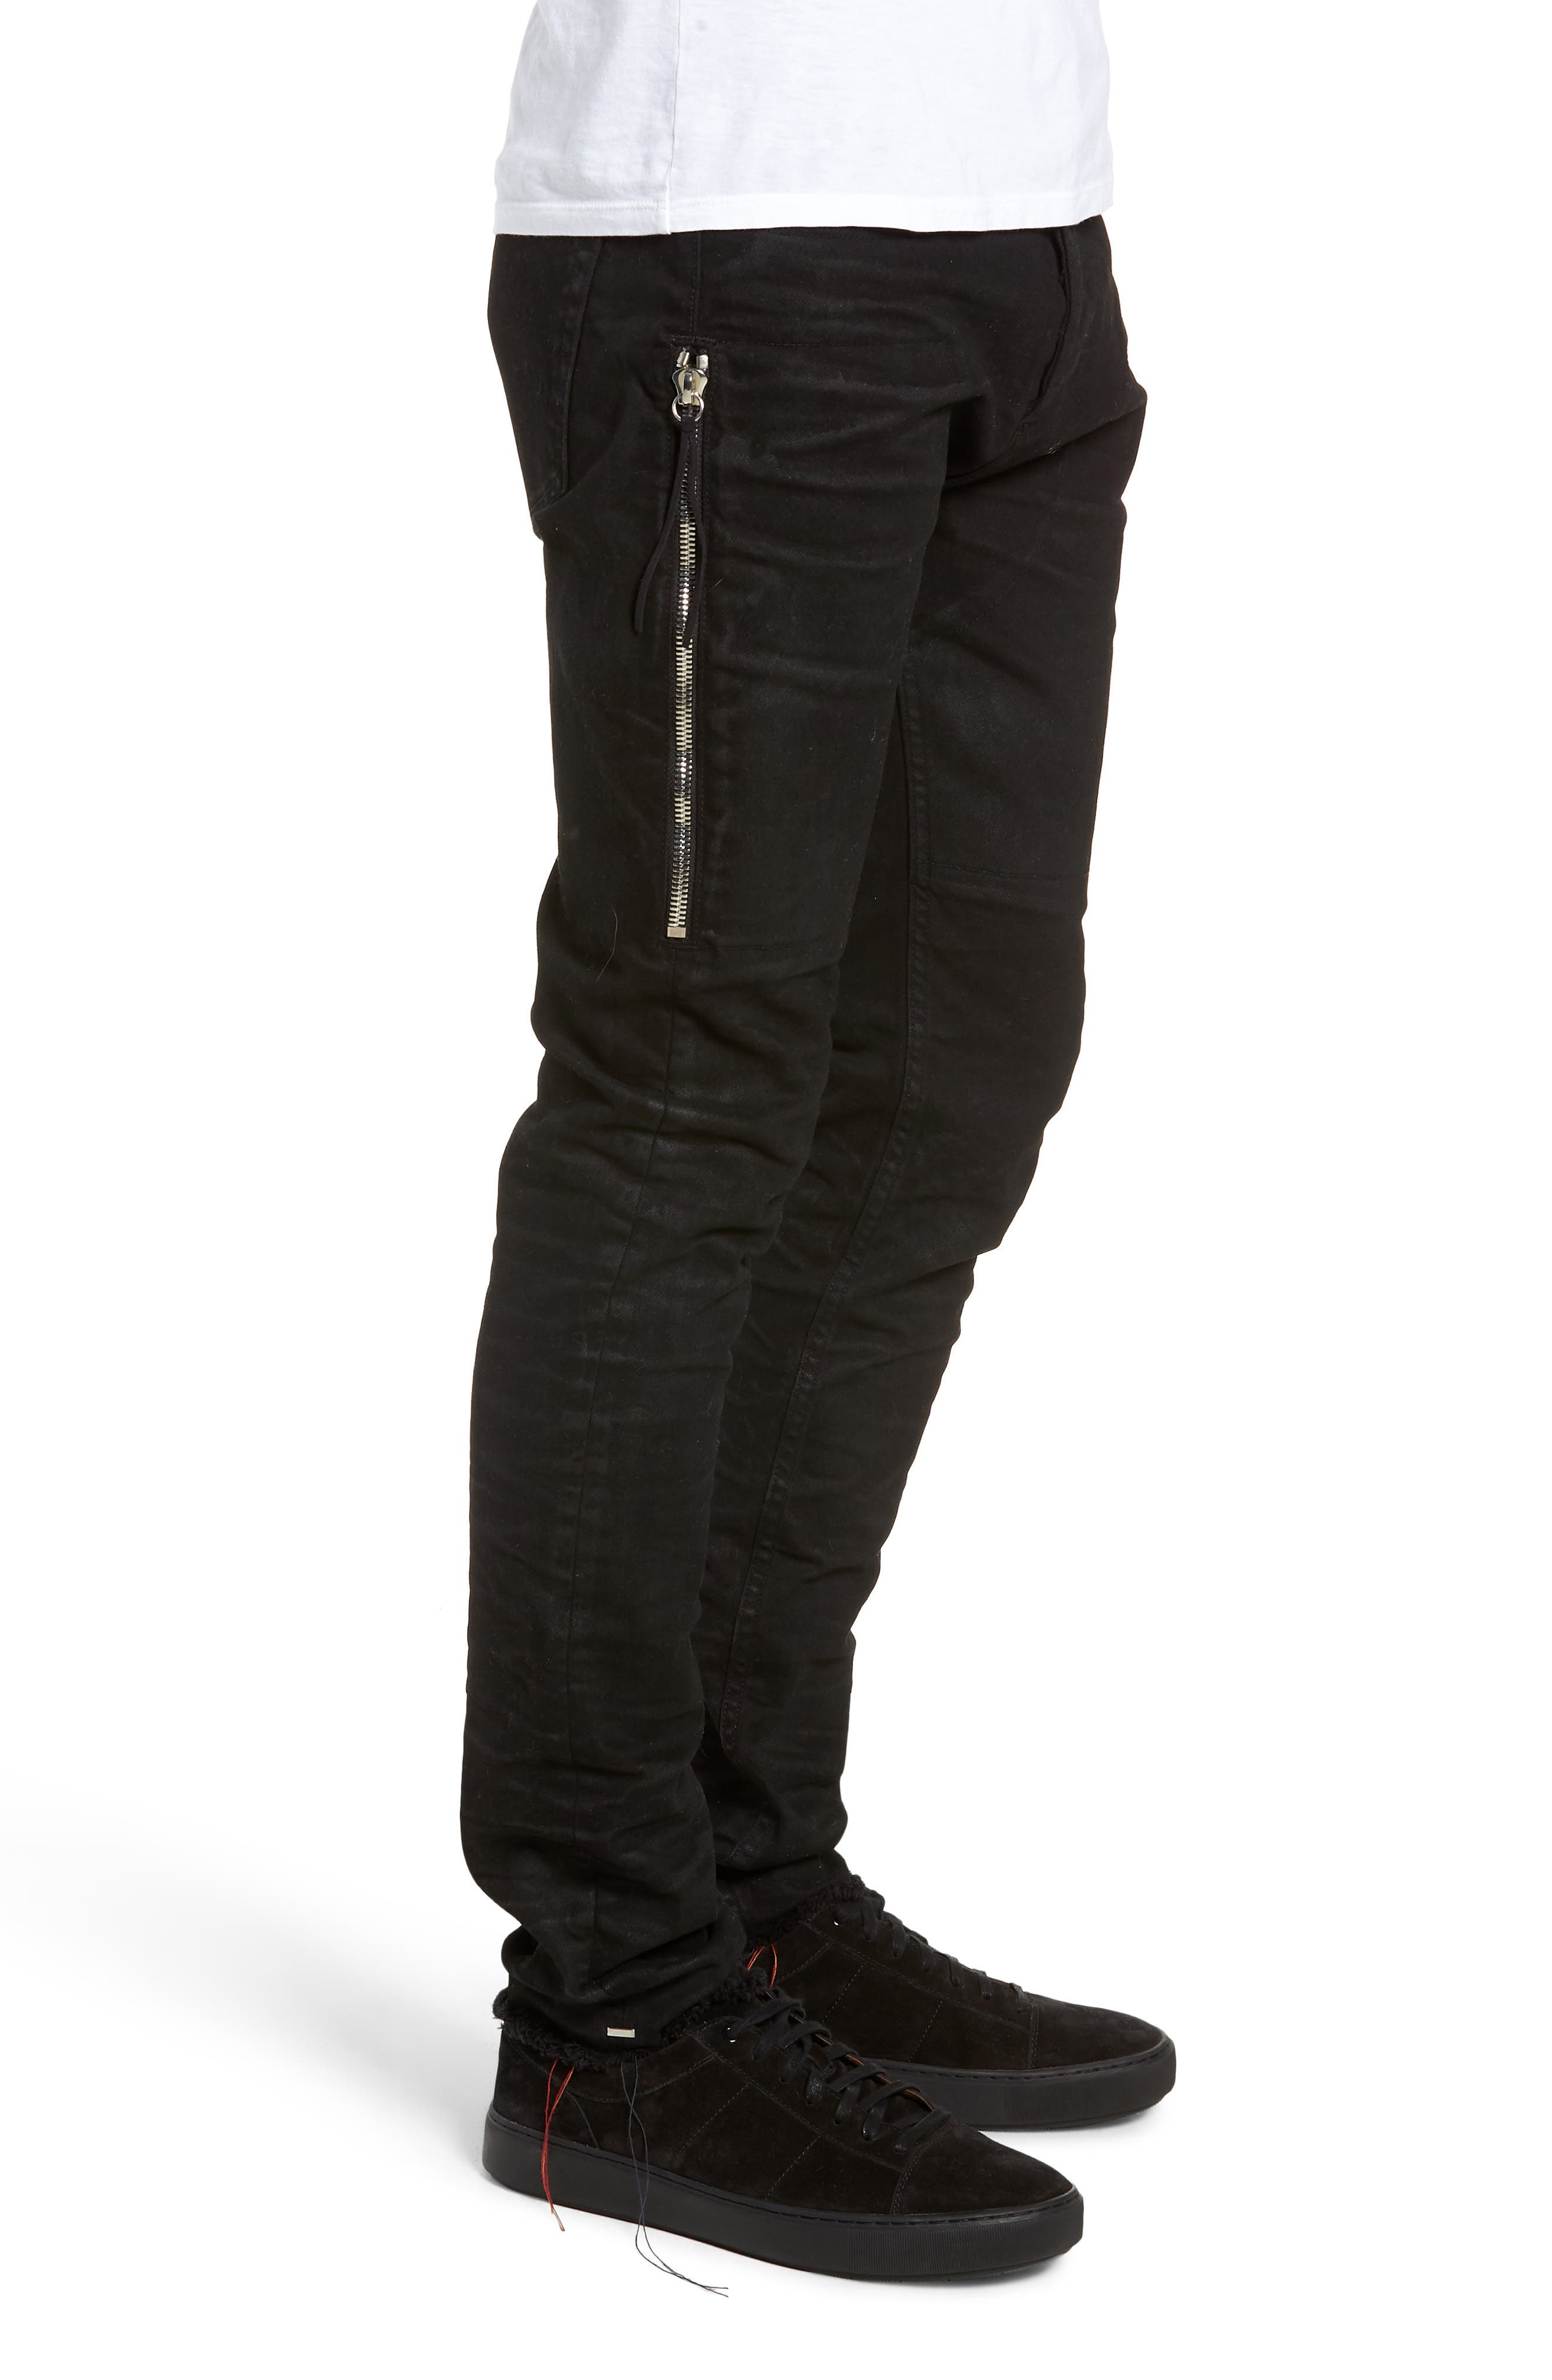 Trafford Skinny Fit Jeans,                             Alternate thumbnail 3, color,                             HERITAGE WAX